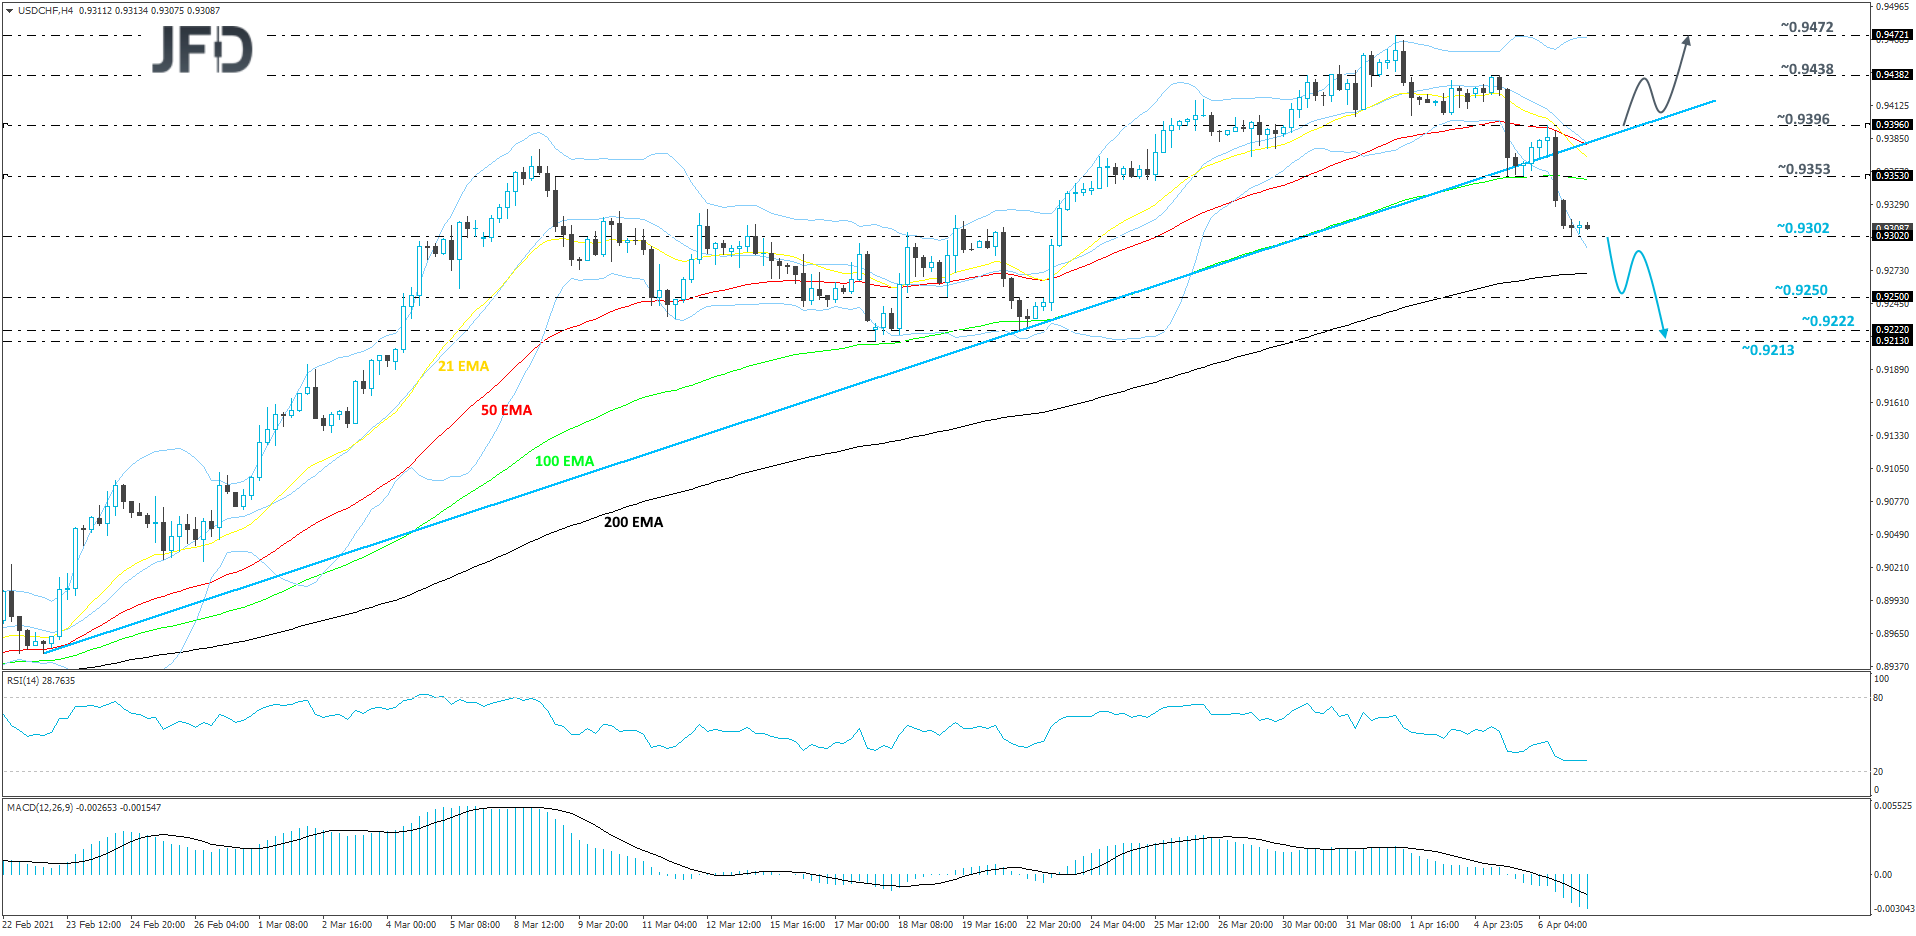 USD/CHF 4-hour chart technical analysis